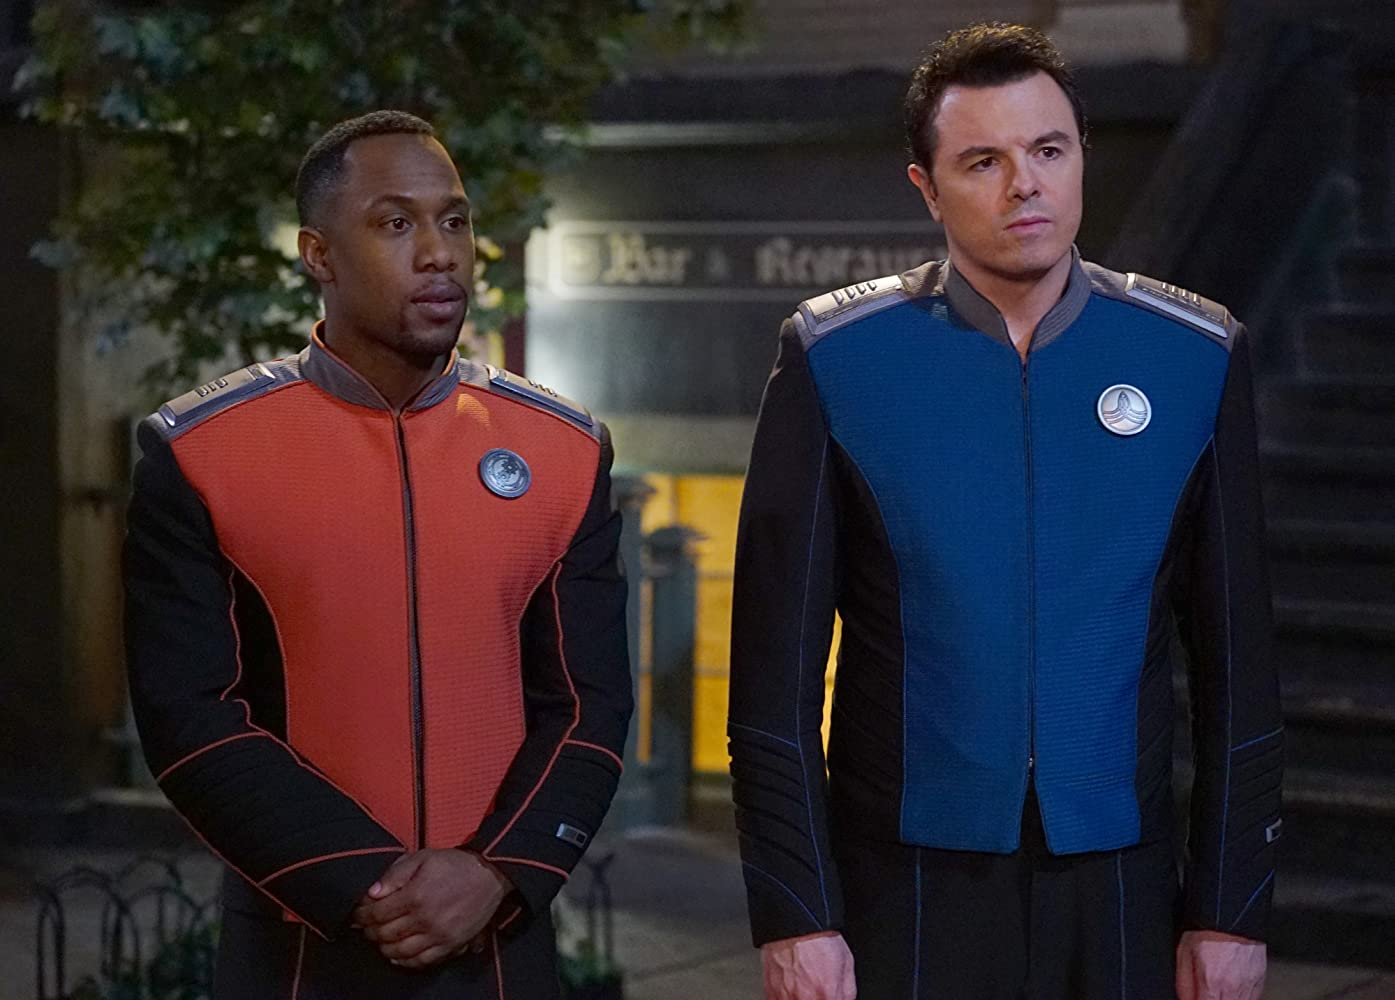 Seth MacFarlane and J. Lee in The Orville (2017)